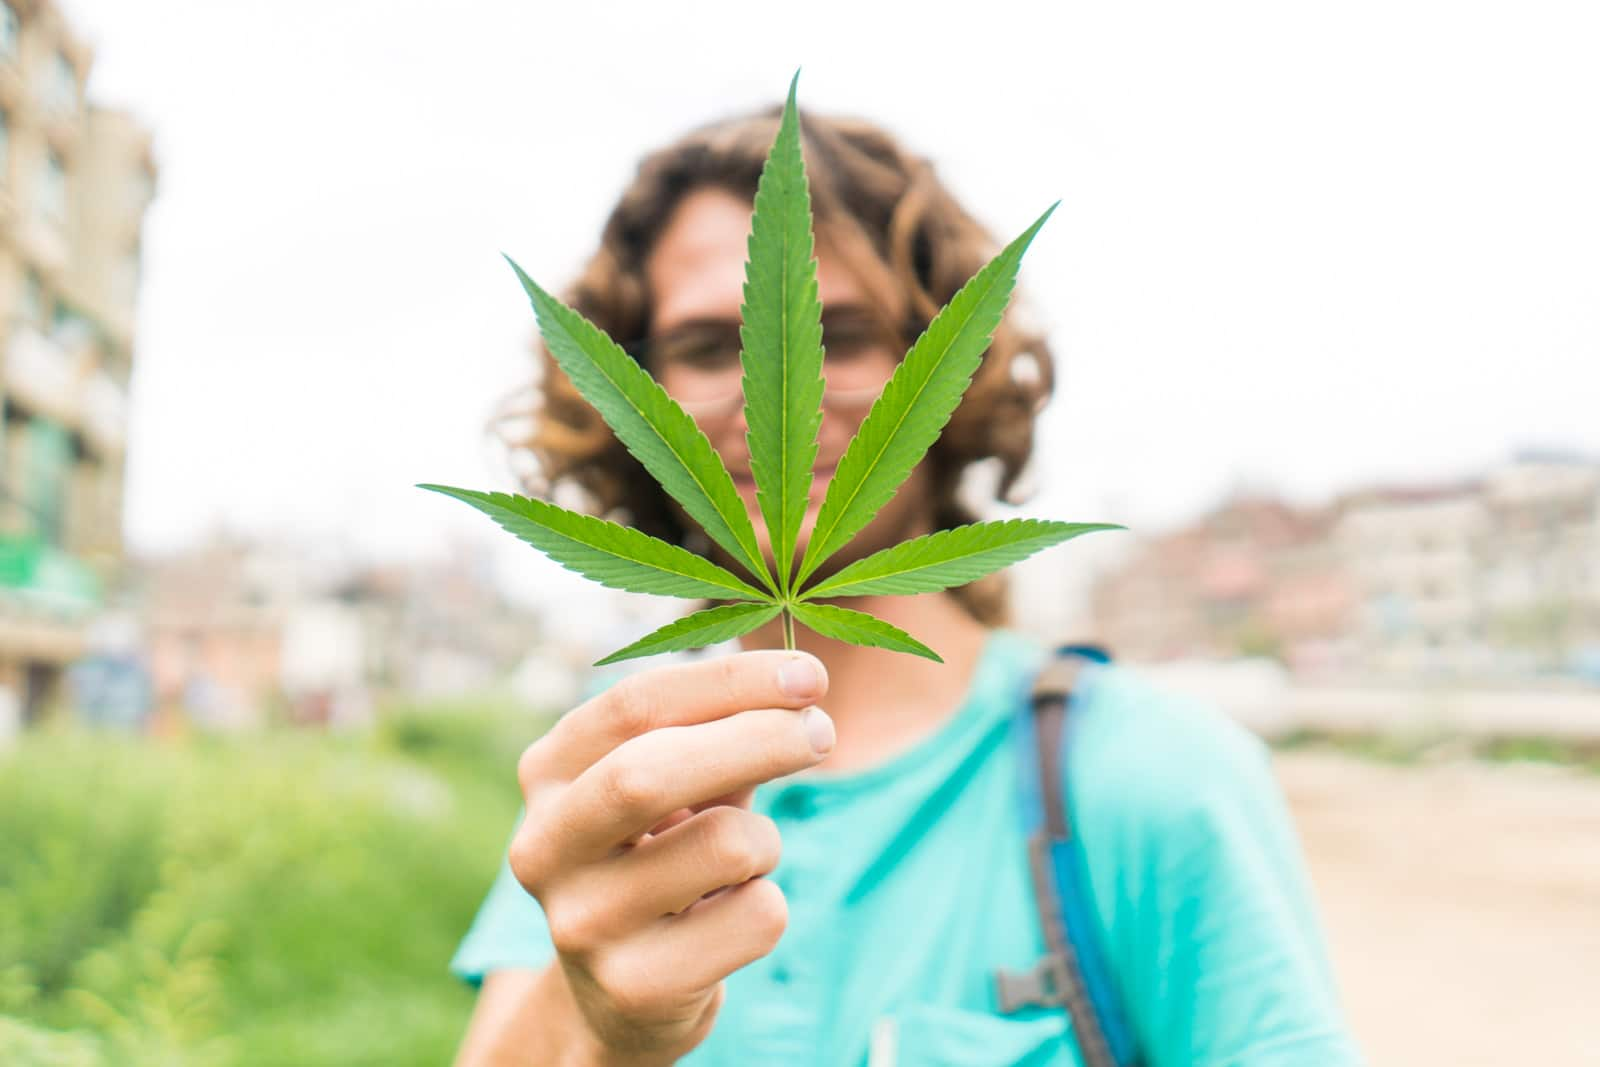 A wild marijuana plant in Patan, Nepal - Lost With Purpose travel blog